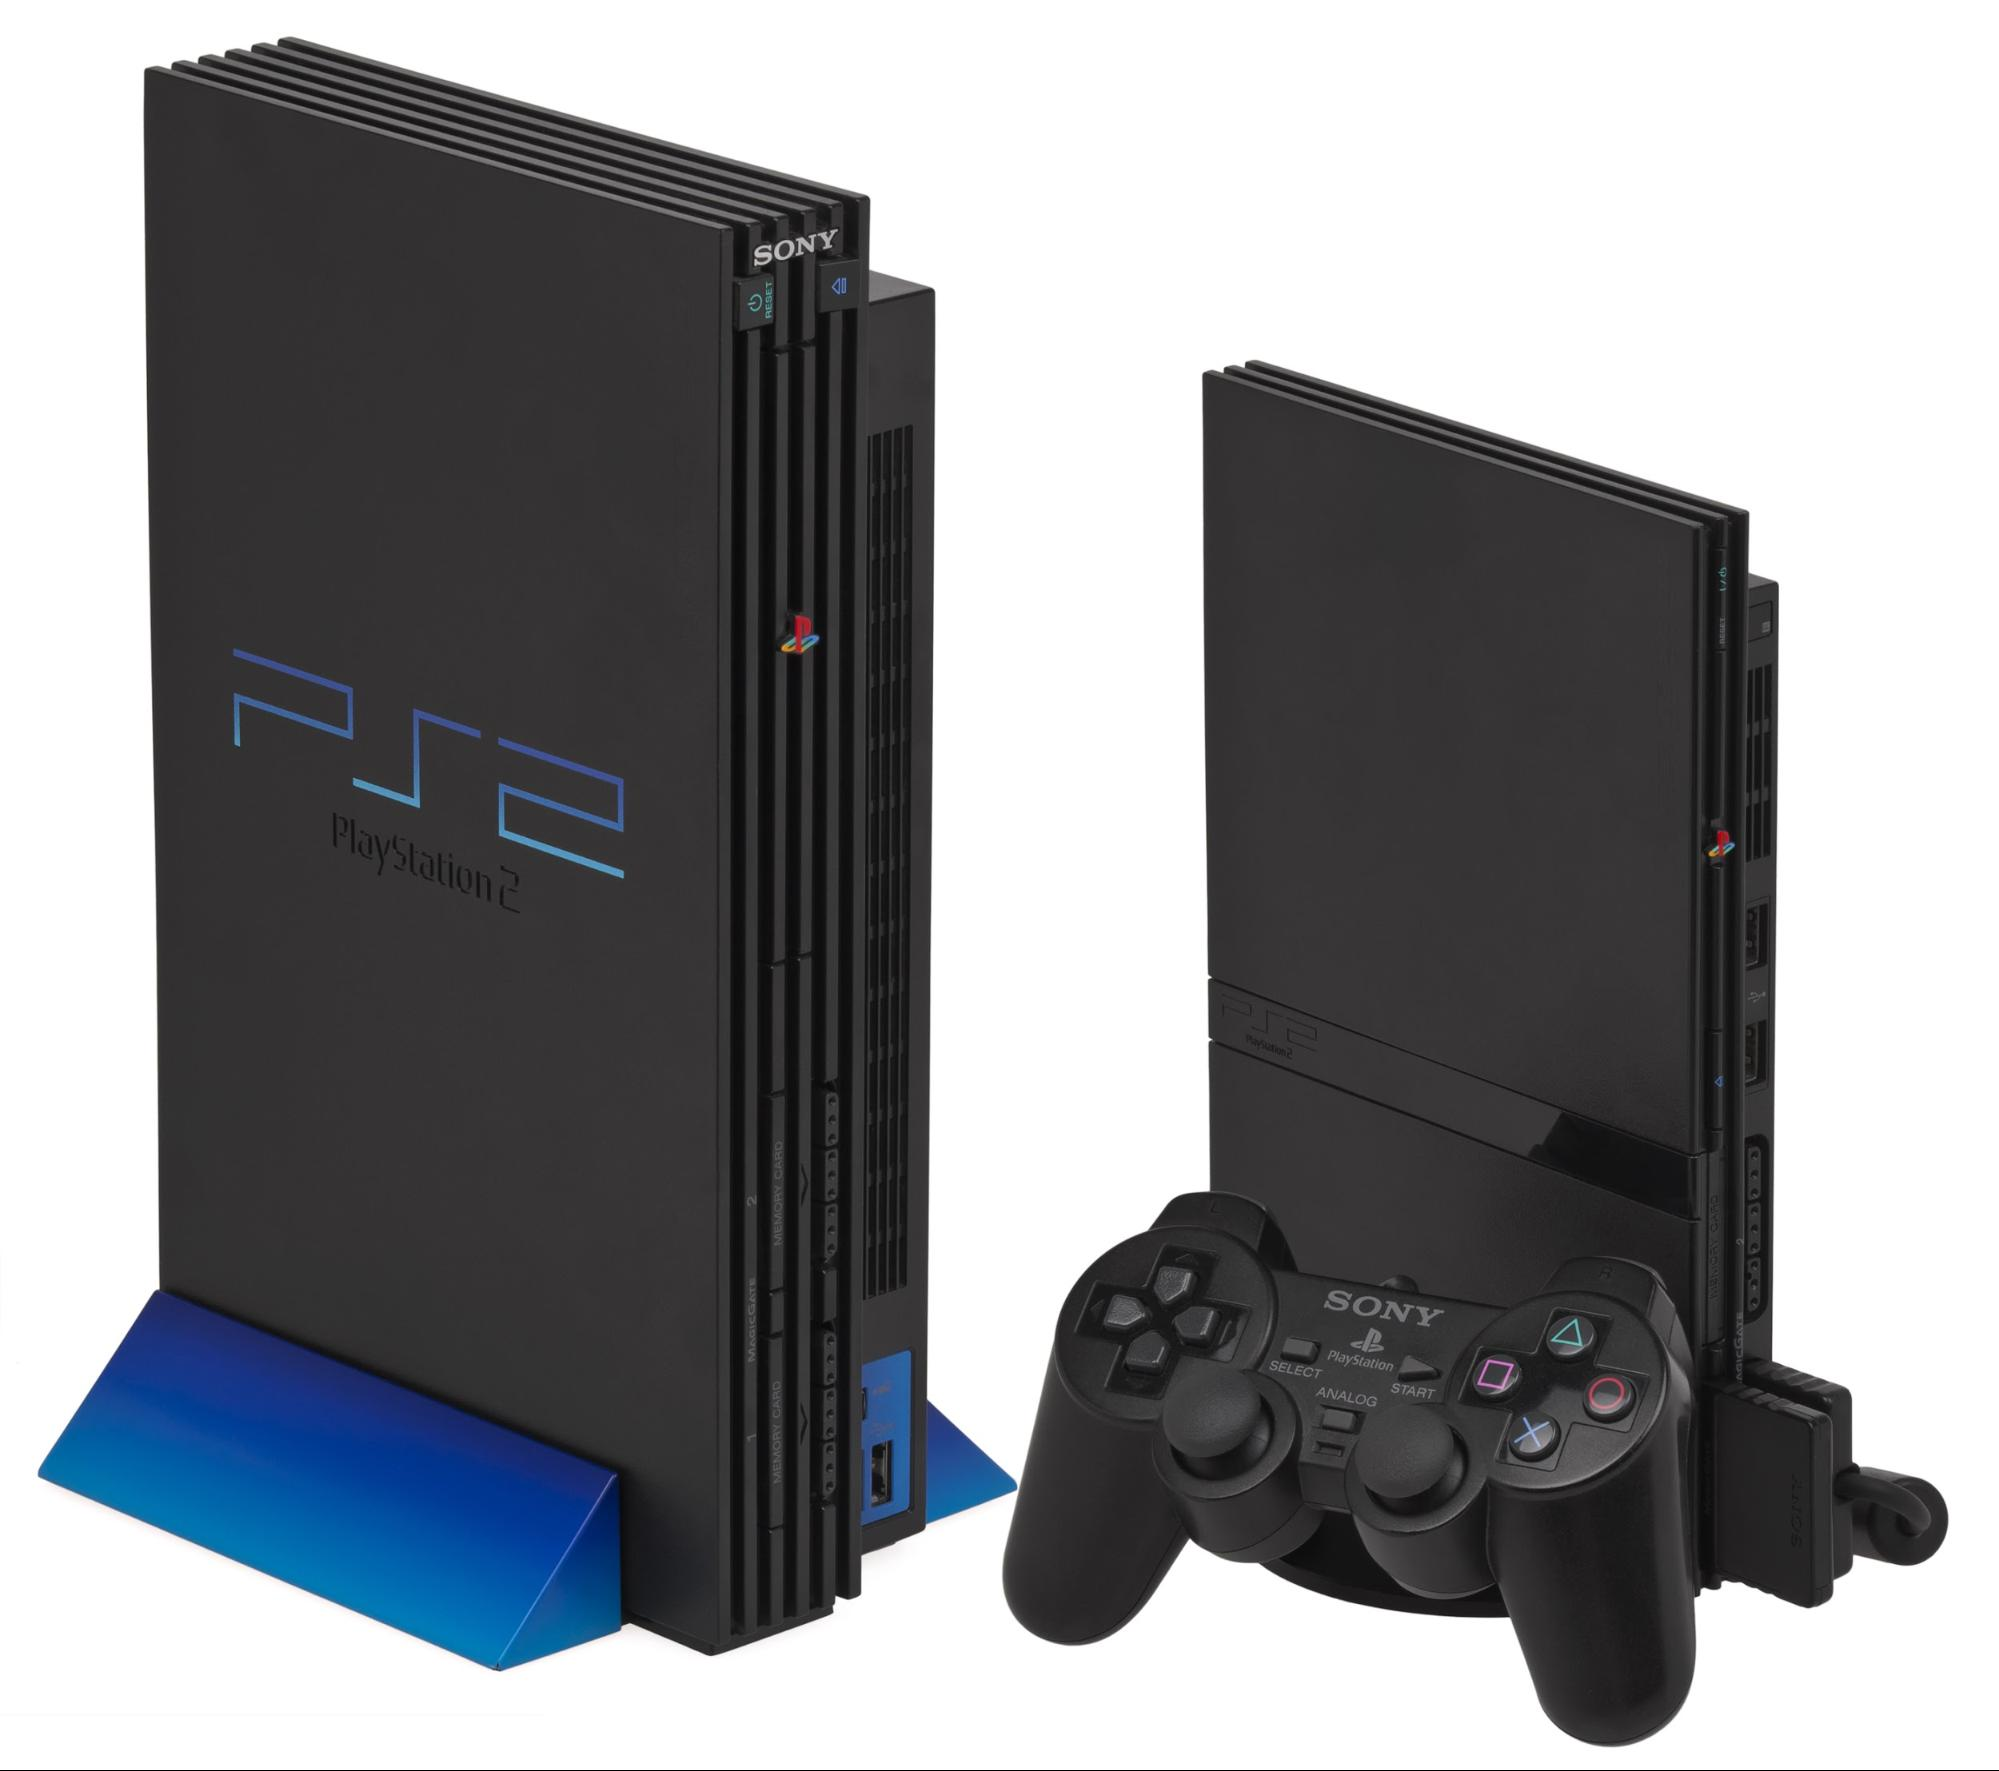 Playstation2 i slim og original